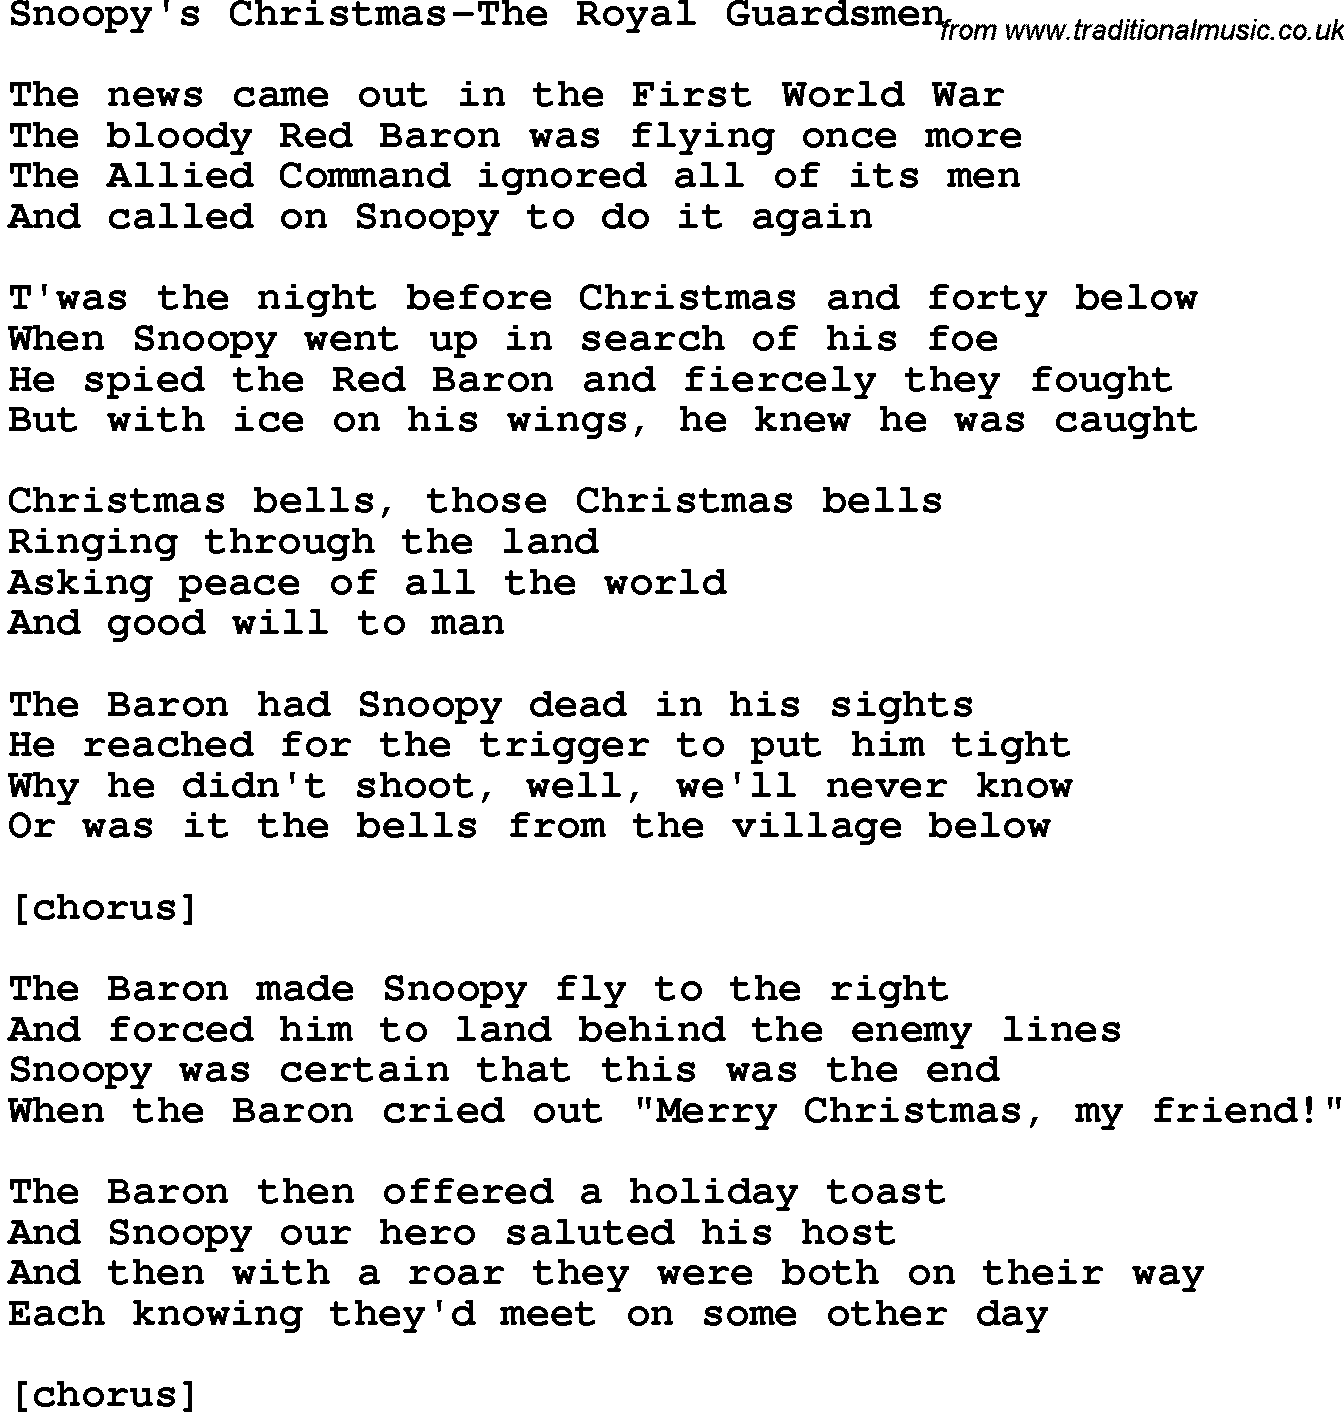 novelty song snoopys christmas the royal guardsmen lyrics